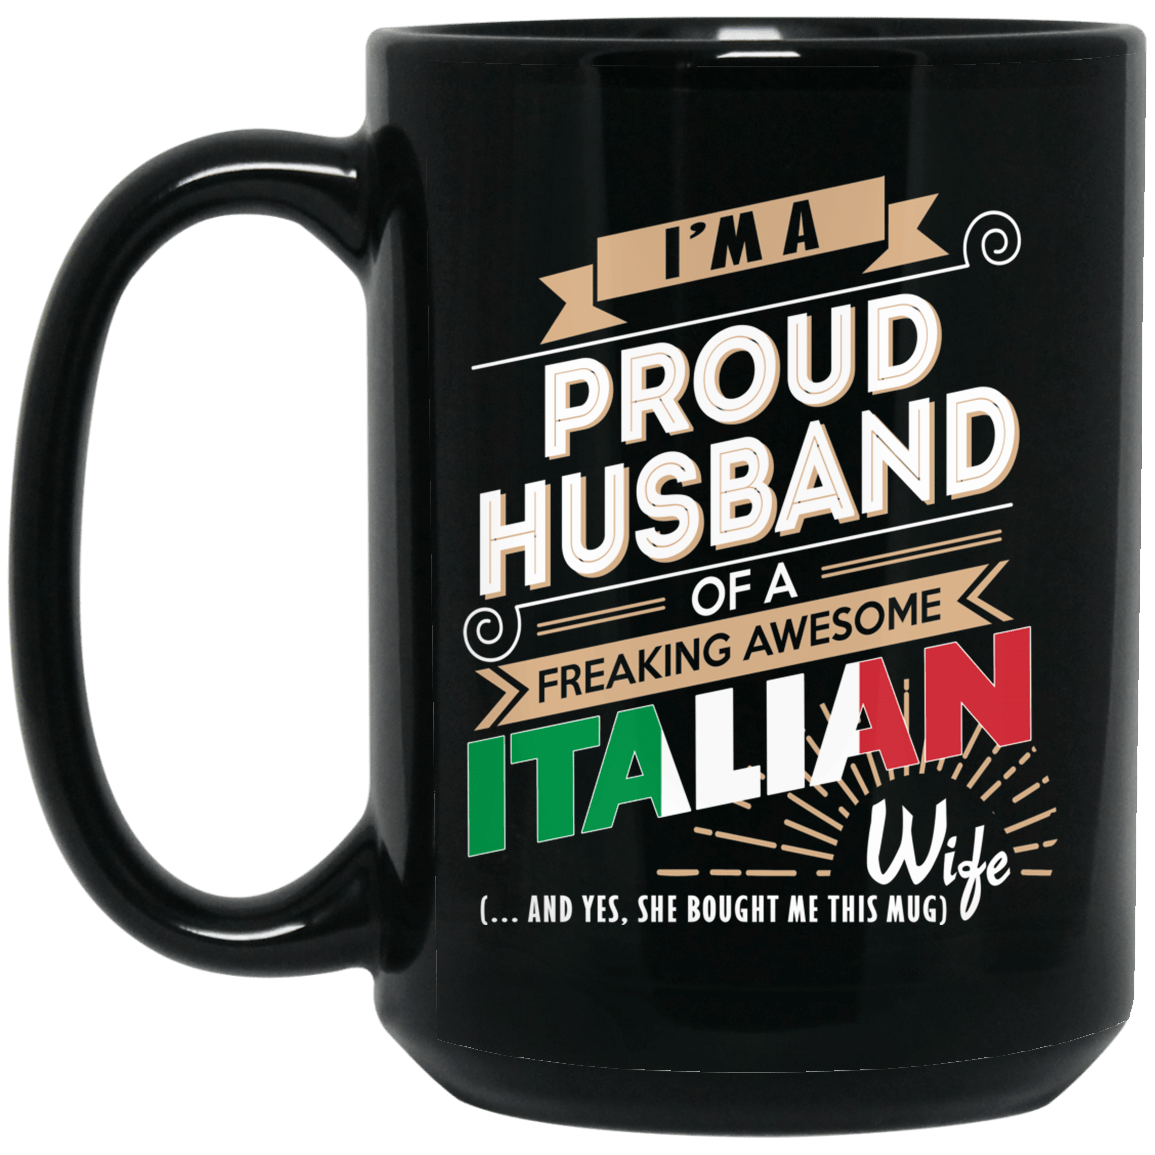 Proud Husband Of A Freaking Awesome Italian Wife Mug 1066-10182-72136518-49311 - Tee Ript